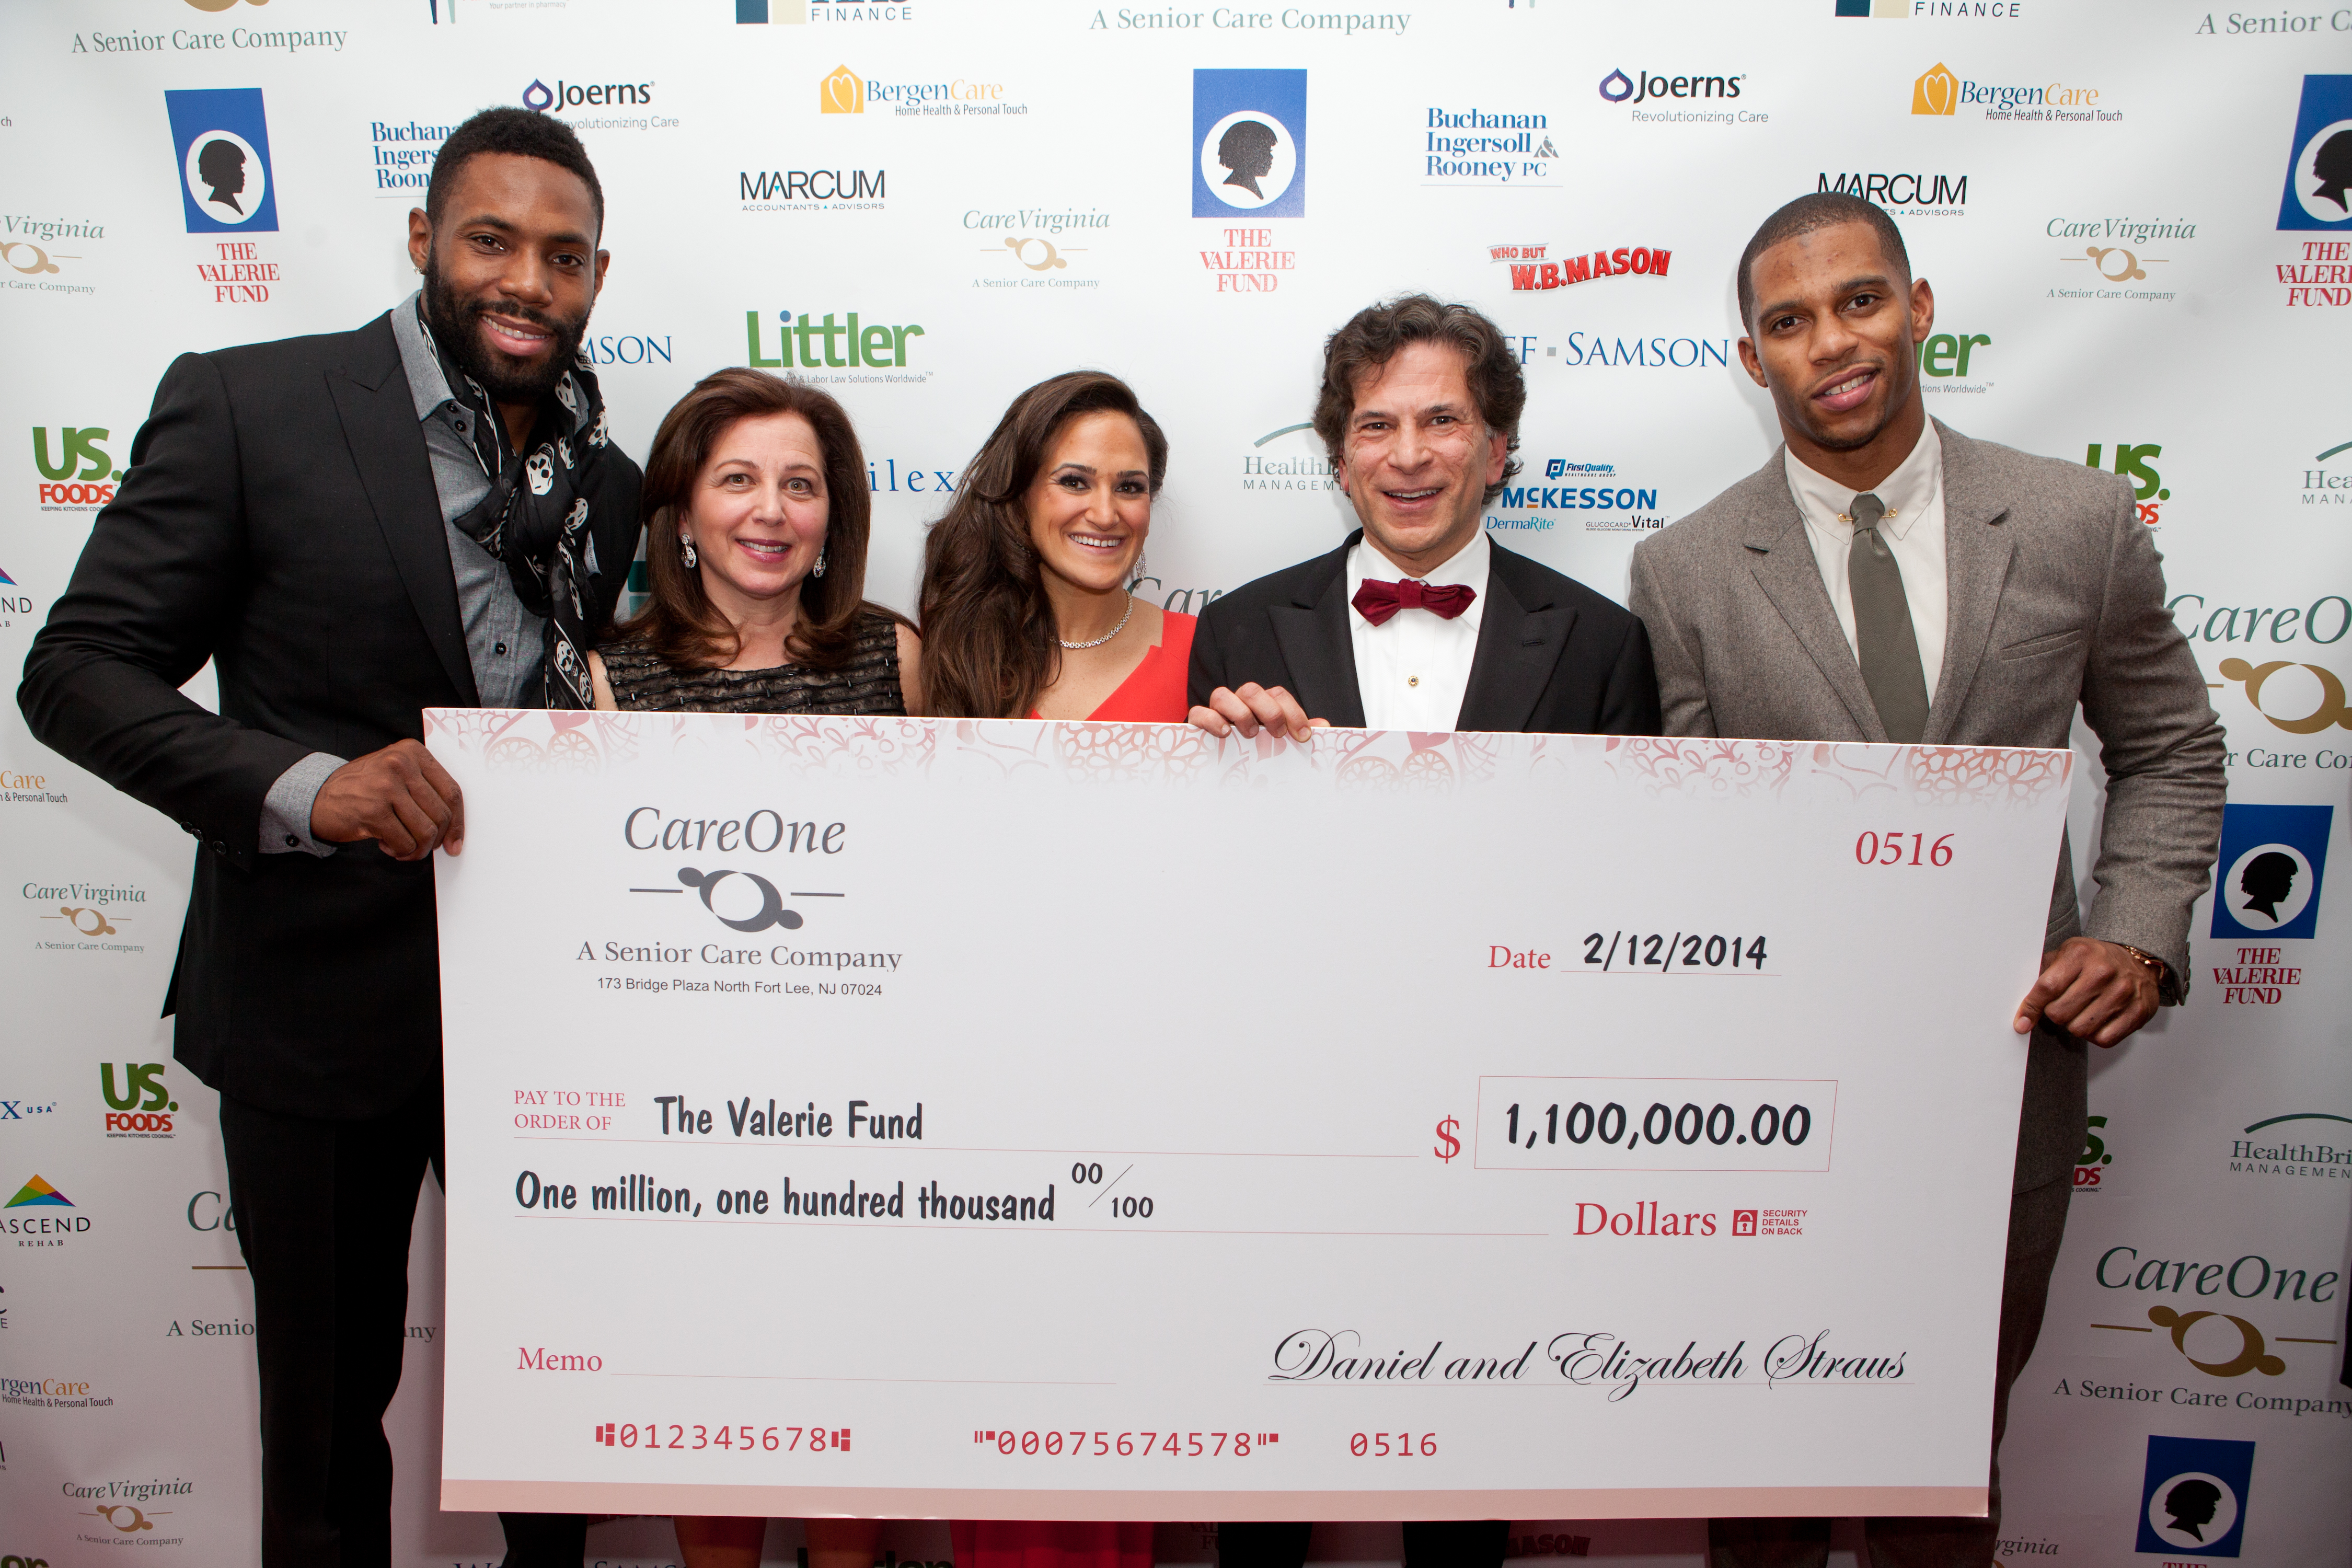 Victor Cruz of the New York Giants, and Antonio Cromartie of the New York Jets, joined Daniel E. Straus, Elizabeth Straus and Joyce Straus of CareOne. (Photo: Business Wire)